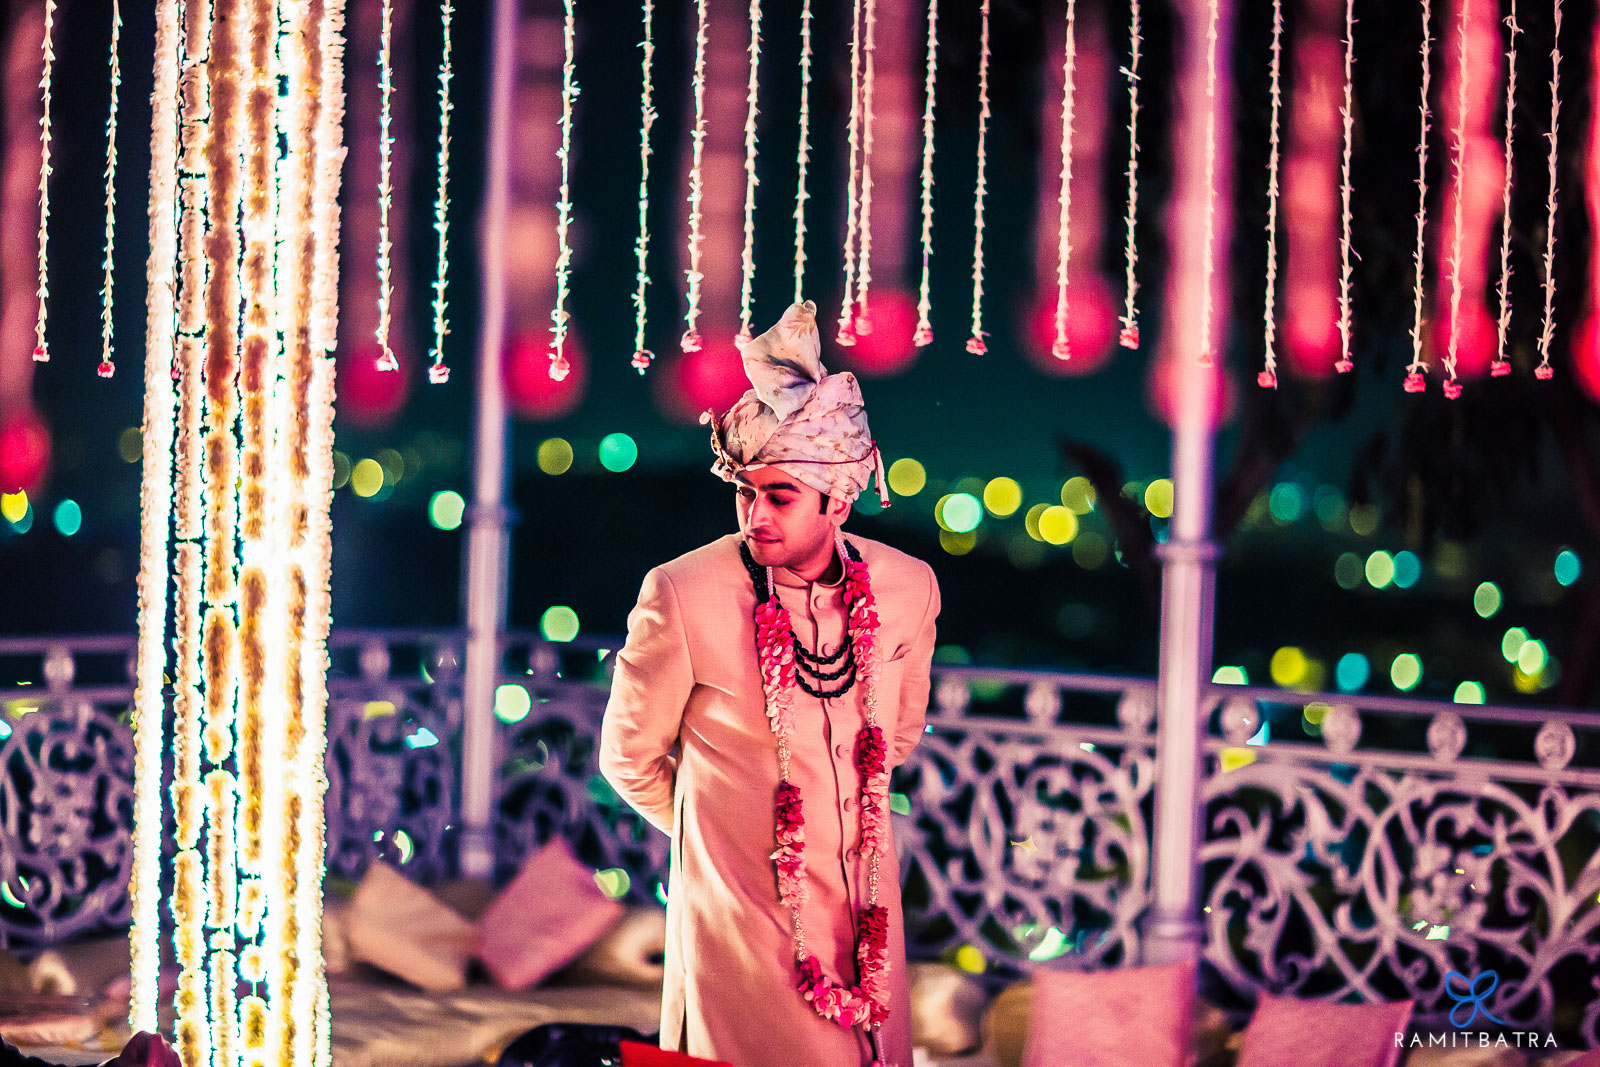 Wedding-Photographer-Hyderabad-India-RamitBatra_61